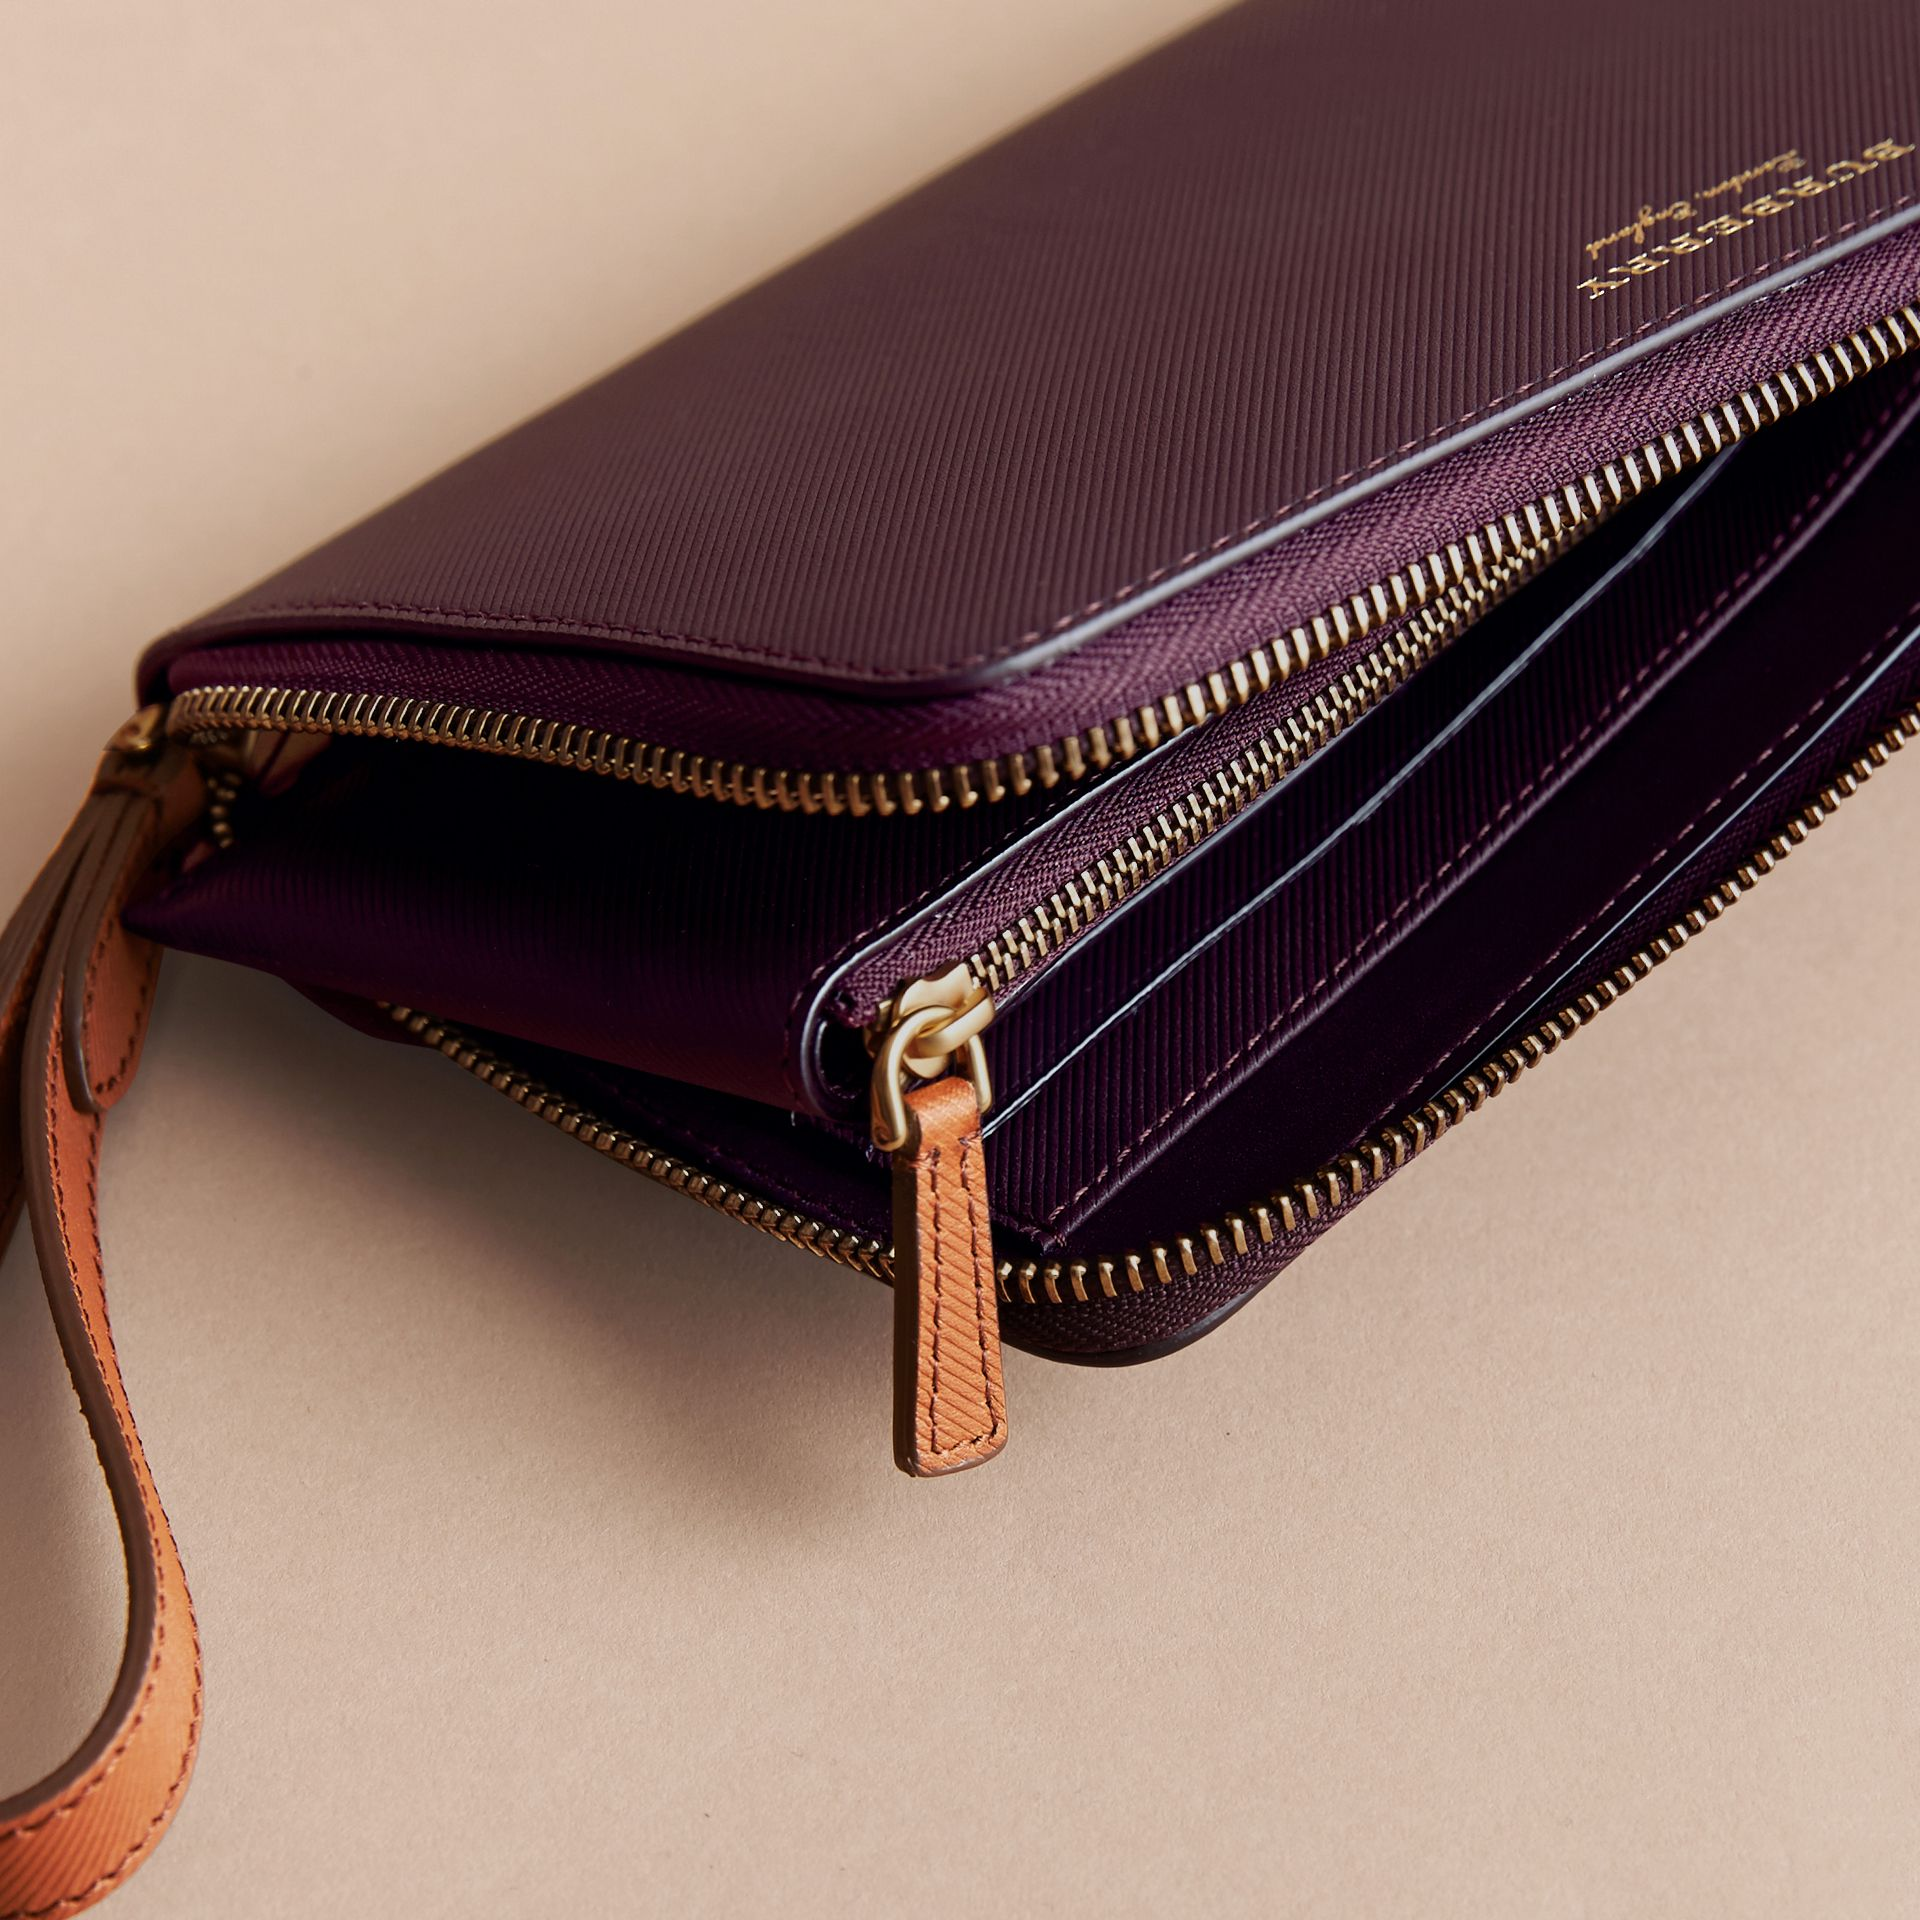 Two-tone Trench Leather Travel Wallet in Wine - Men | Burberry - gallery image 4